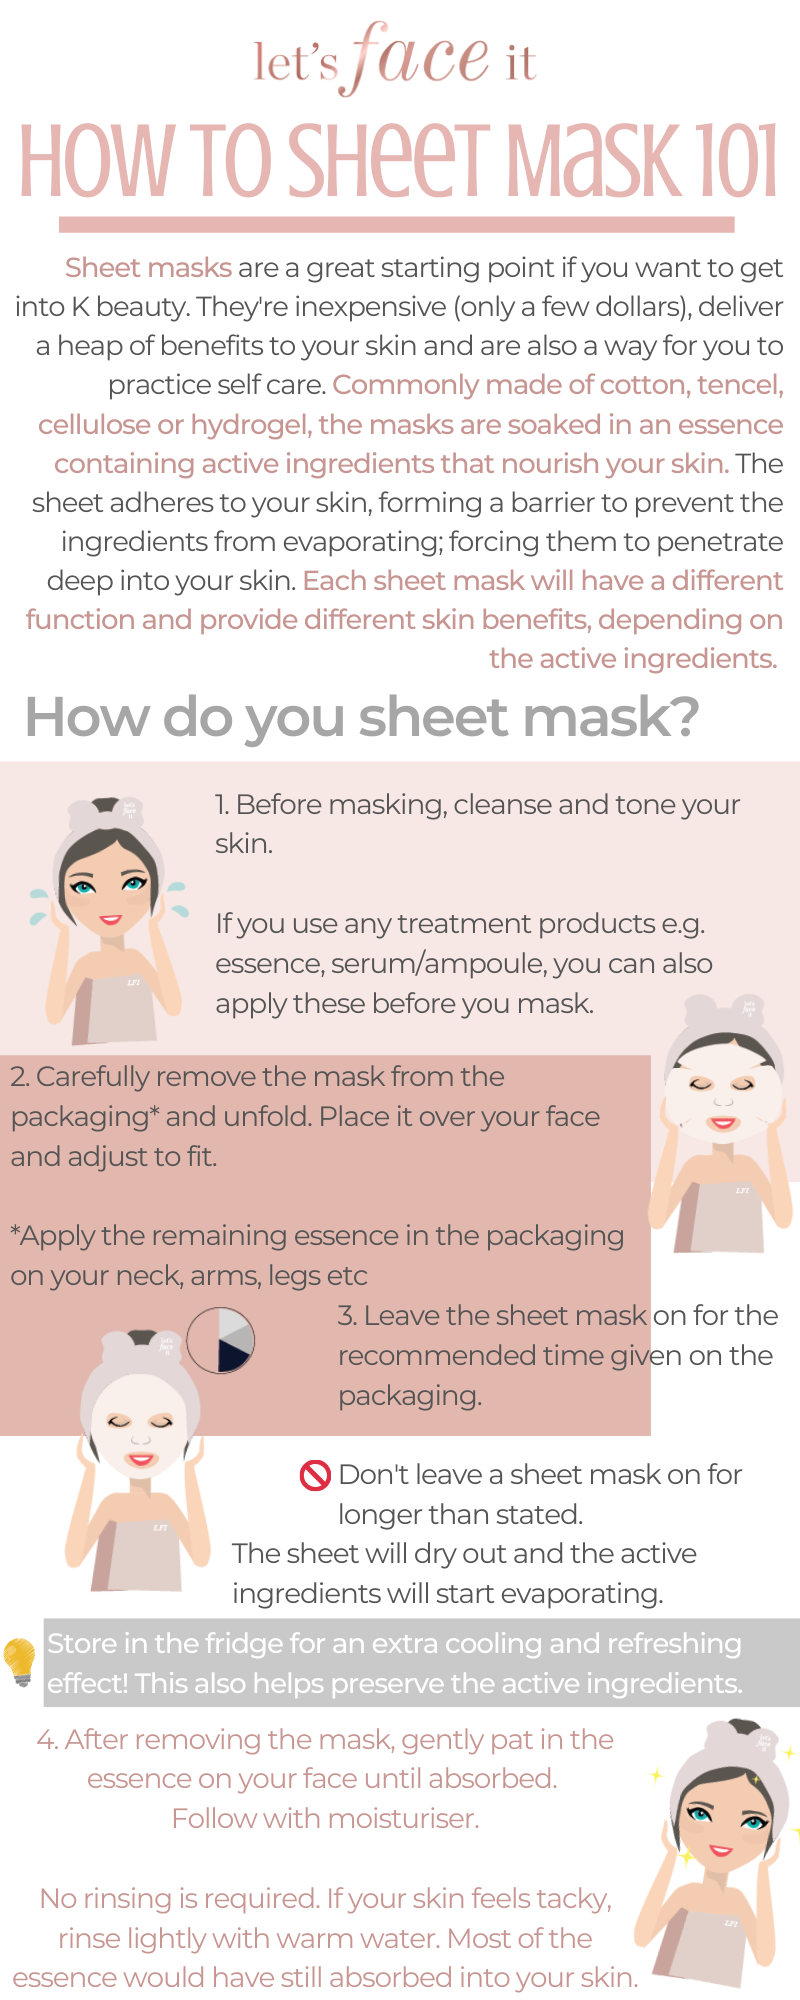 K Beauty Tips How To Sheet Mask 101 Let S Face It Australia Korean Beauty Tips K Beauty Sheet Mask